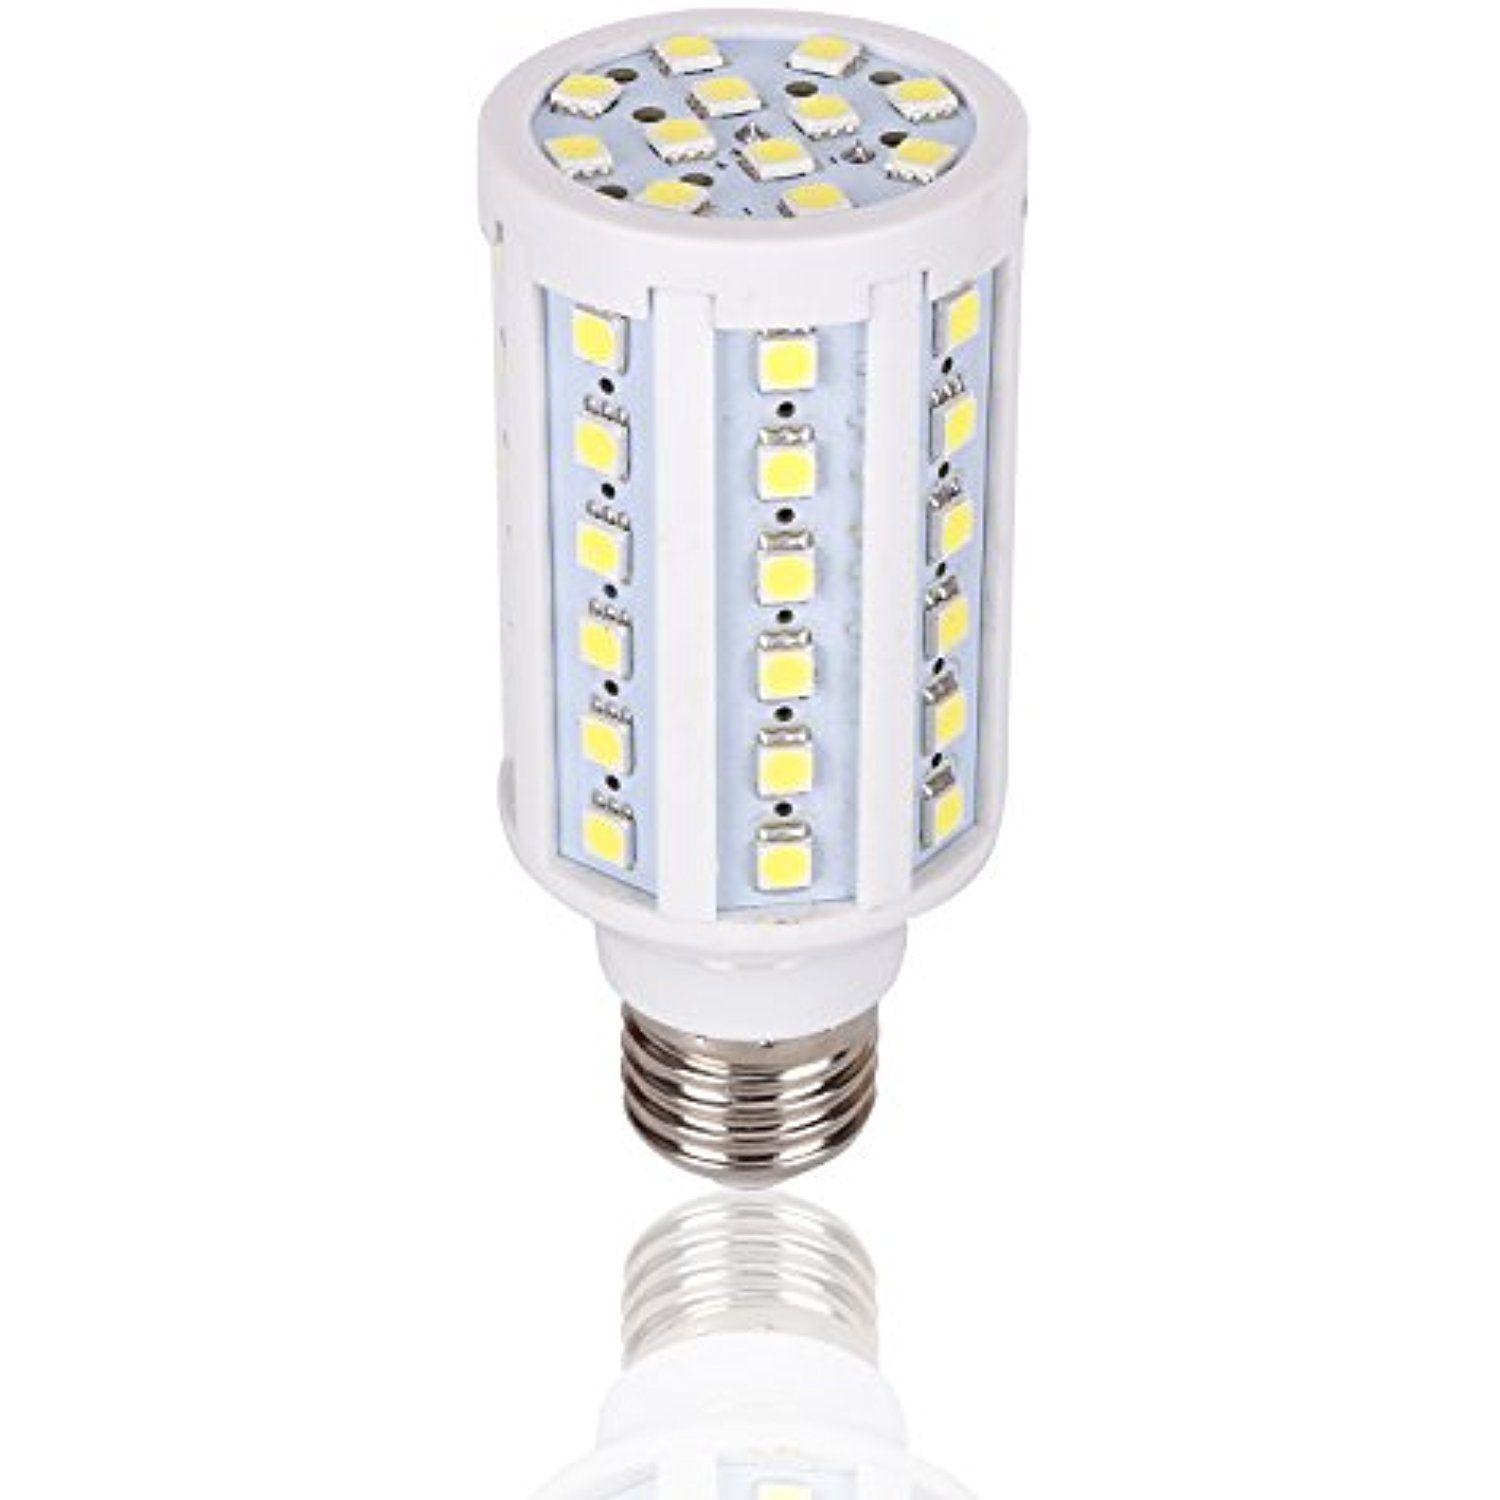 Medium Base 12 Volt Led Light Bulb Dc 12v 20v 6000k Bright White